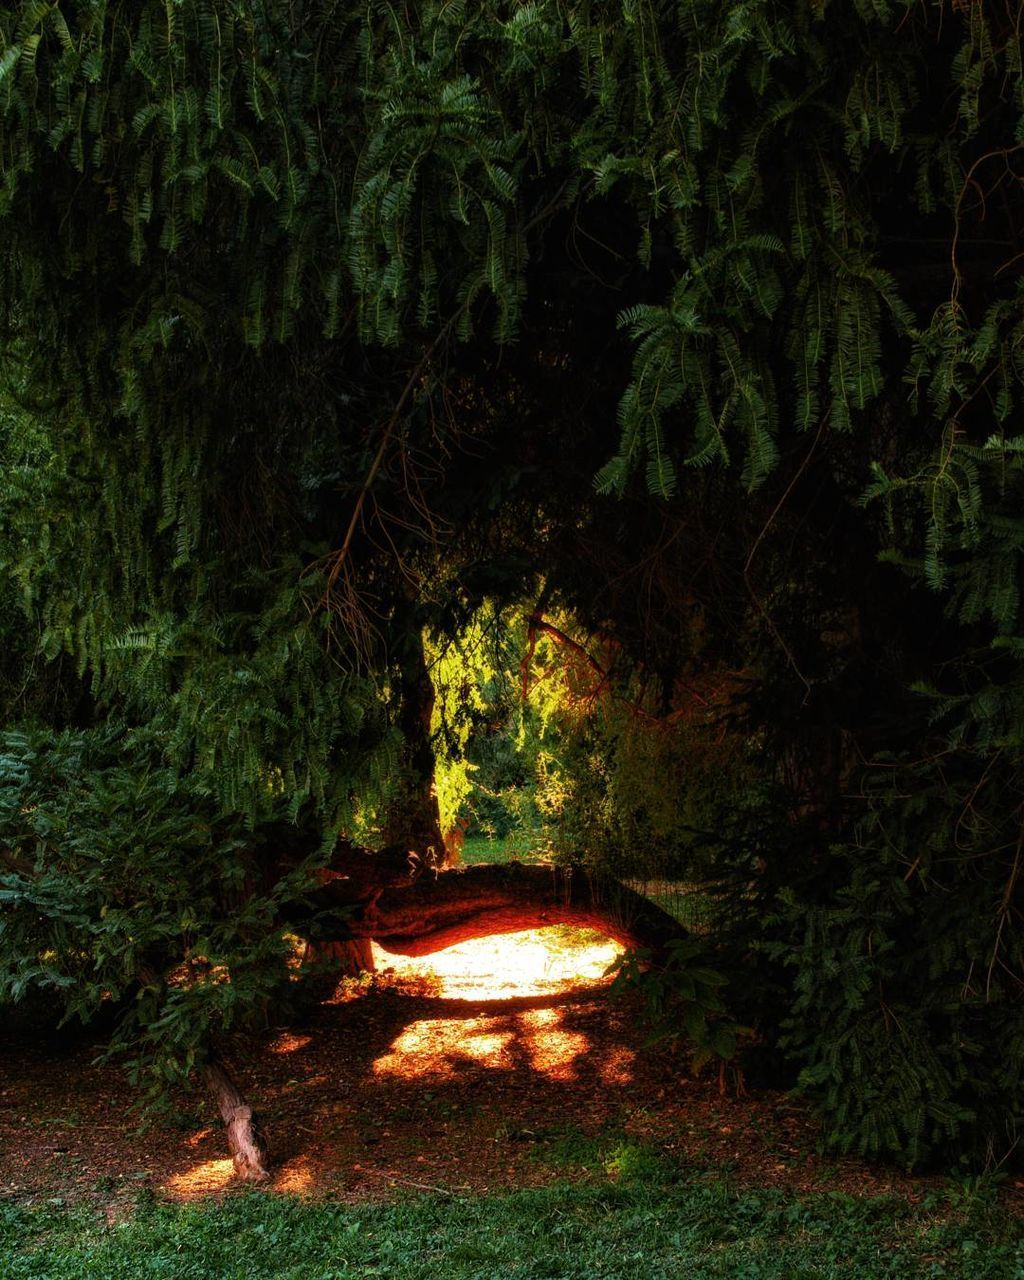 SCENIC VIEW OF FOREST AT NIGHT